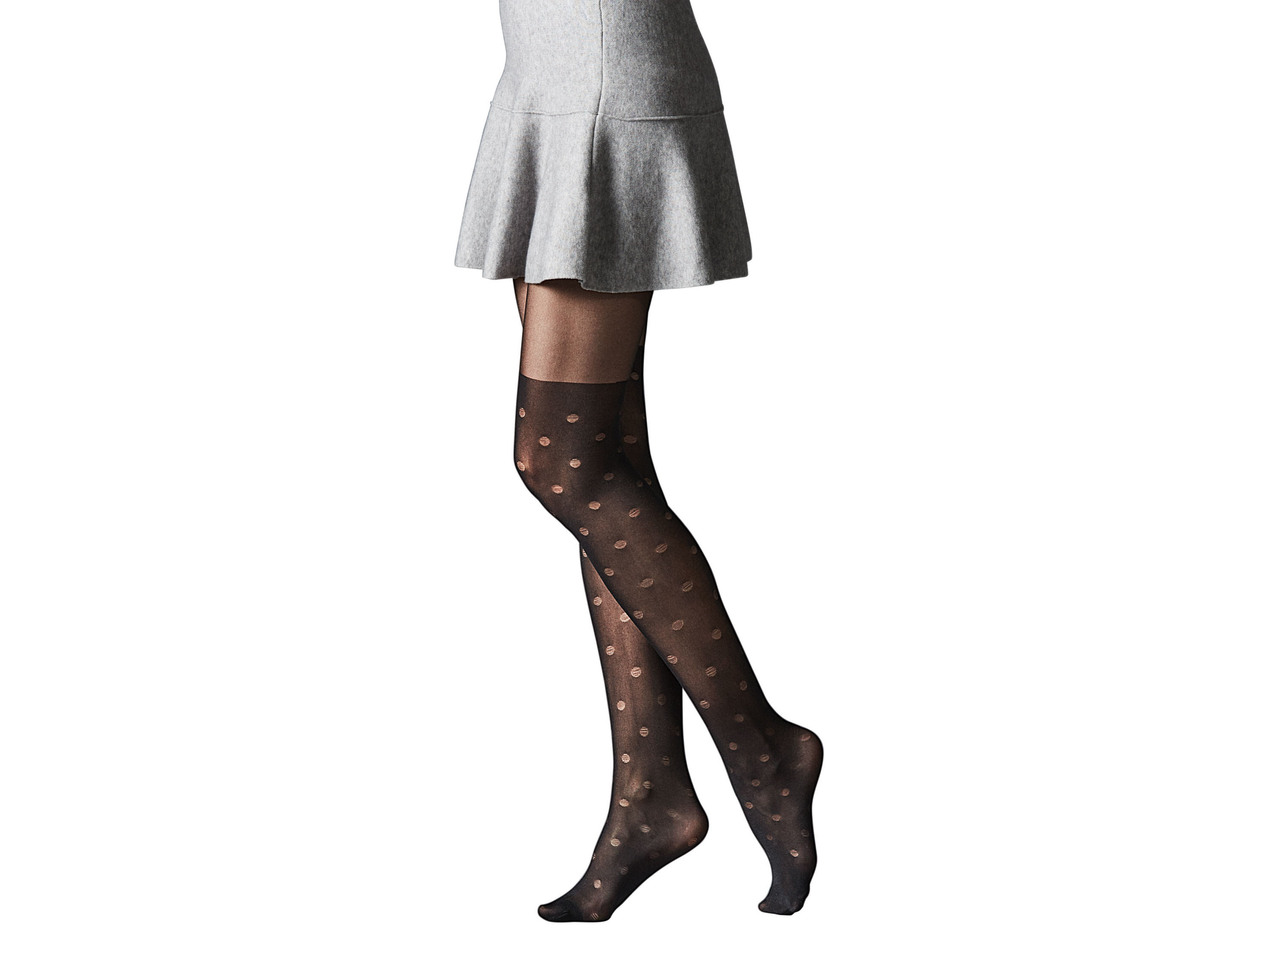 Ladies' Tights - Fashion Style